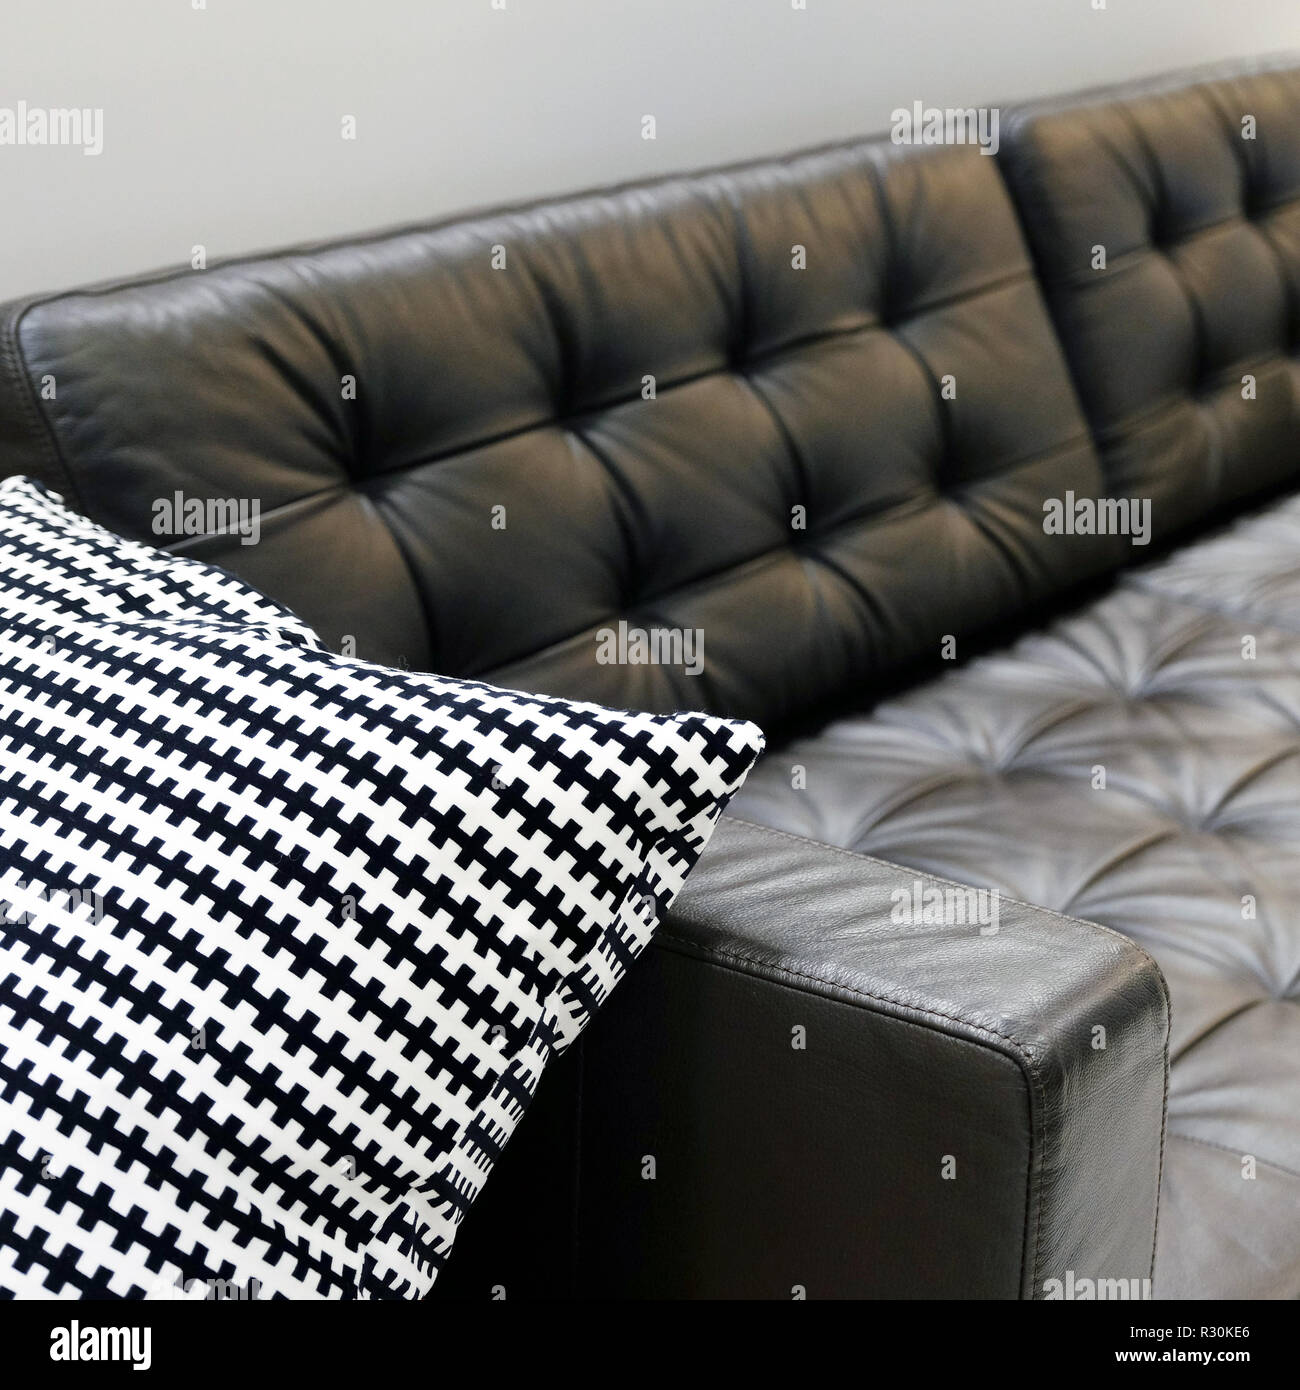 Magnificent Living Room Interior Leather Sofa With Cushions And Fur Caraccident5 Cool Chair Designs And Ideas Caraccident5Info